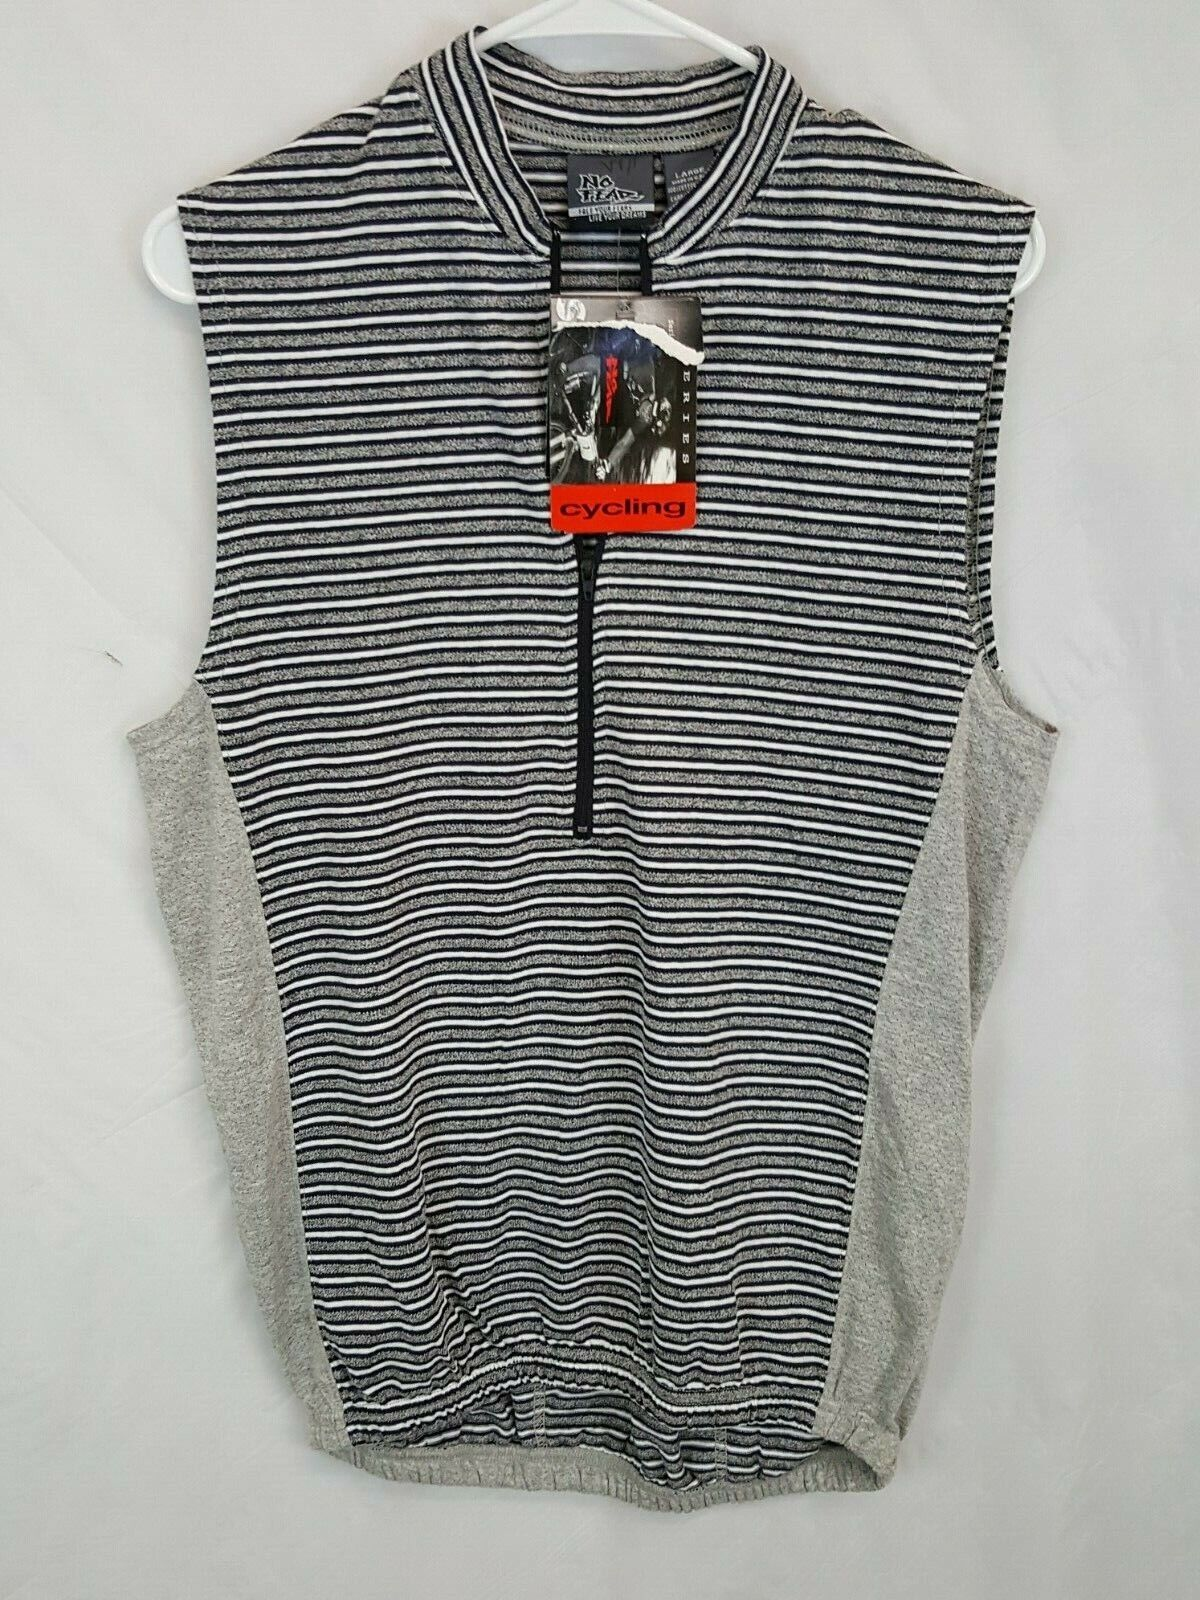 New NOS No Fear Striped Cycling Technical Jersey Vtg 90s Made In USA Size Large